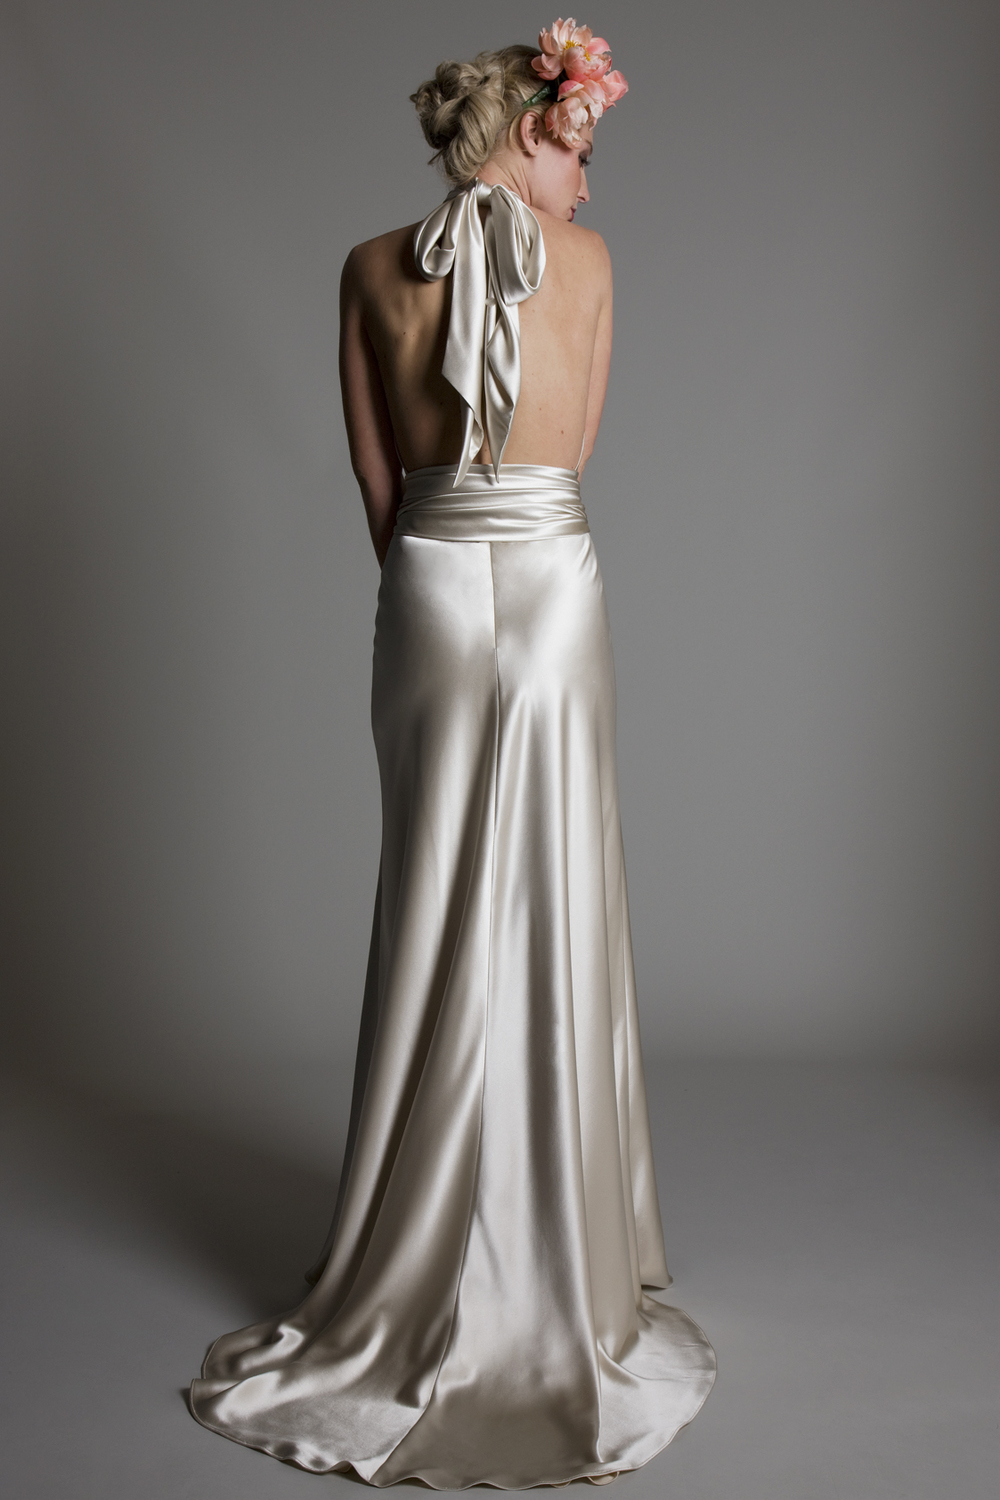 Back view of the Claudia satin halter neck open back bridal wedding dress with satin belt detail by Halfpenny London